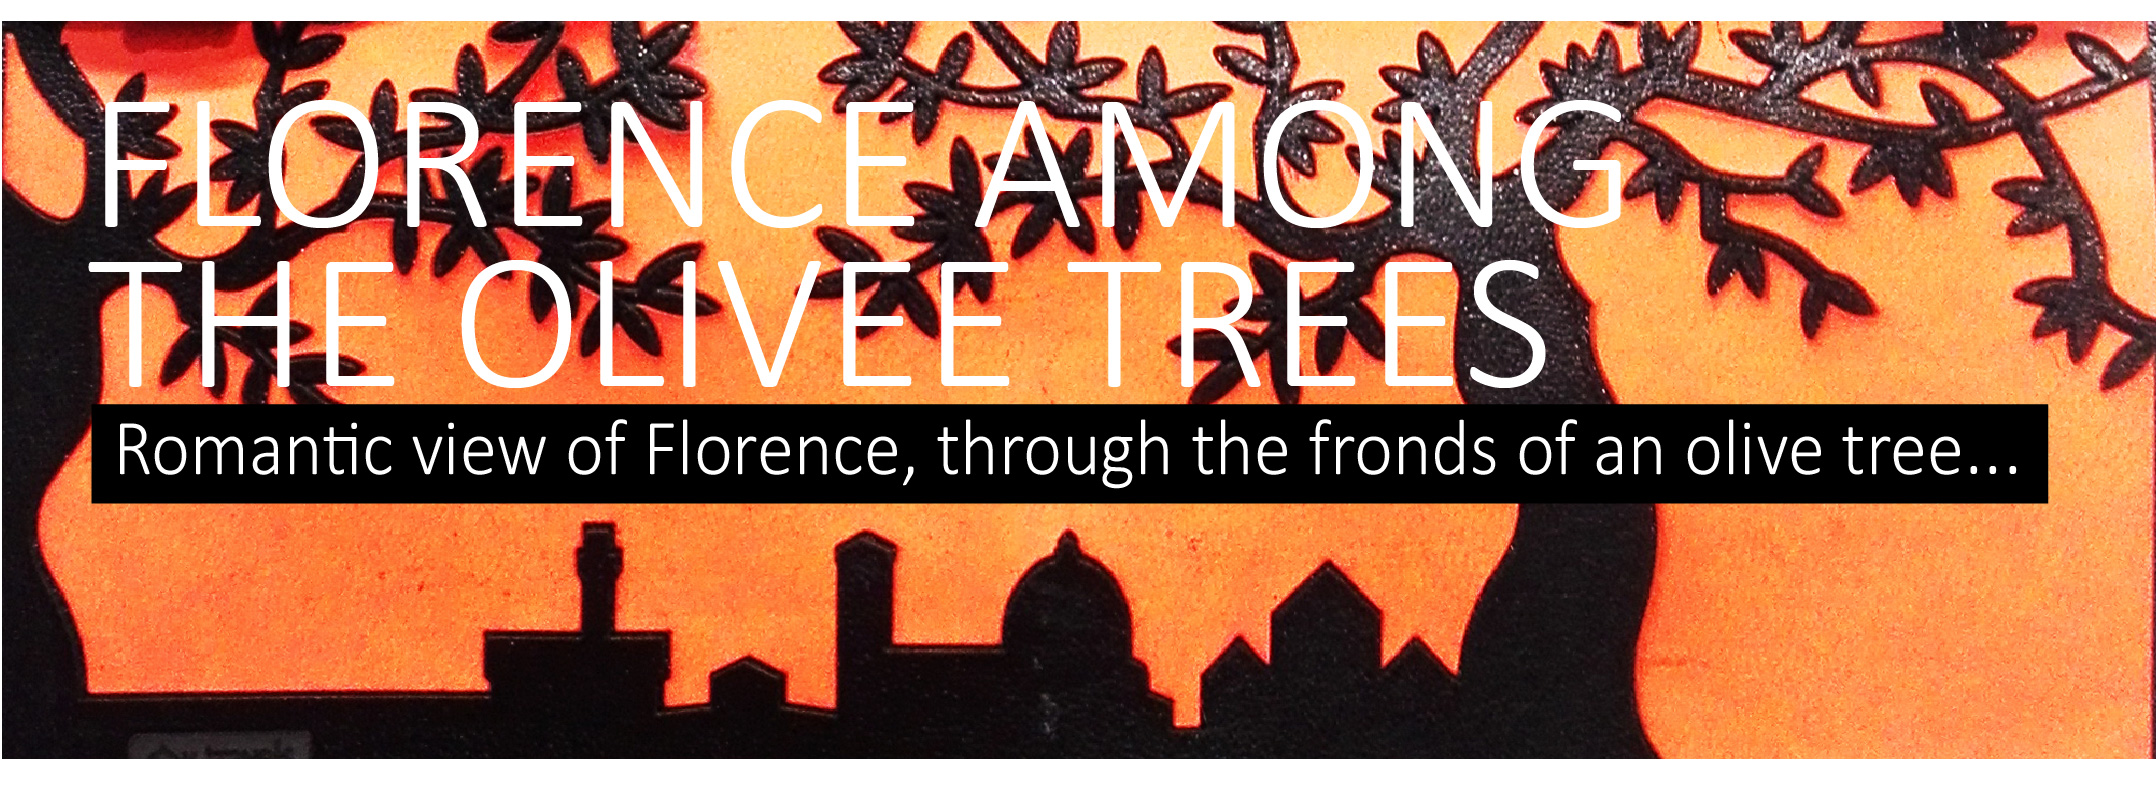 florence amont the olive trees